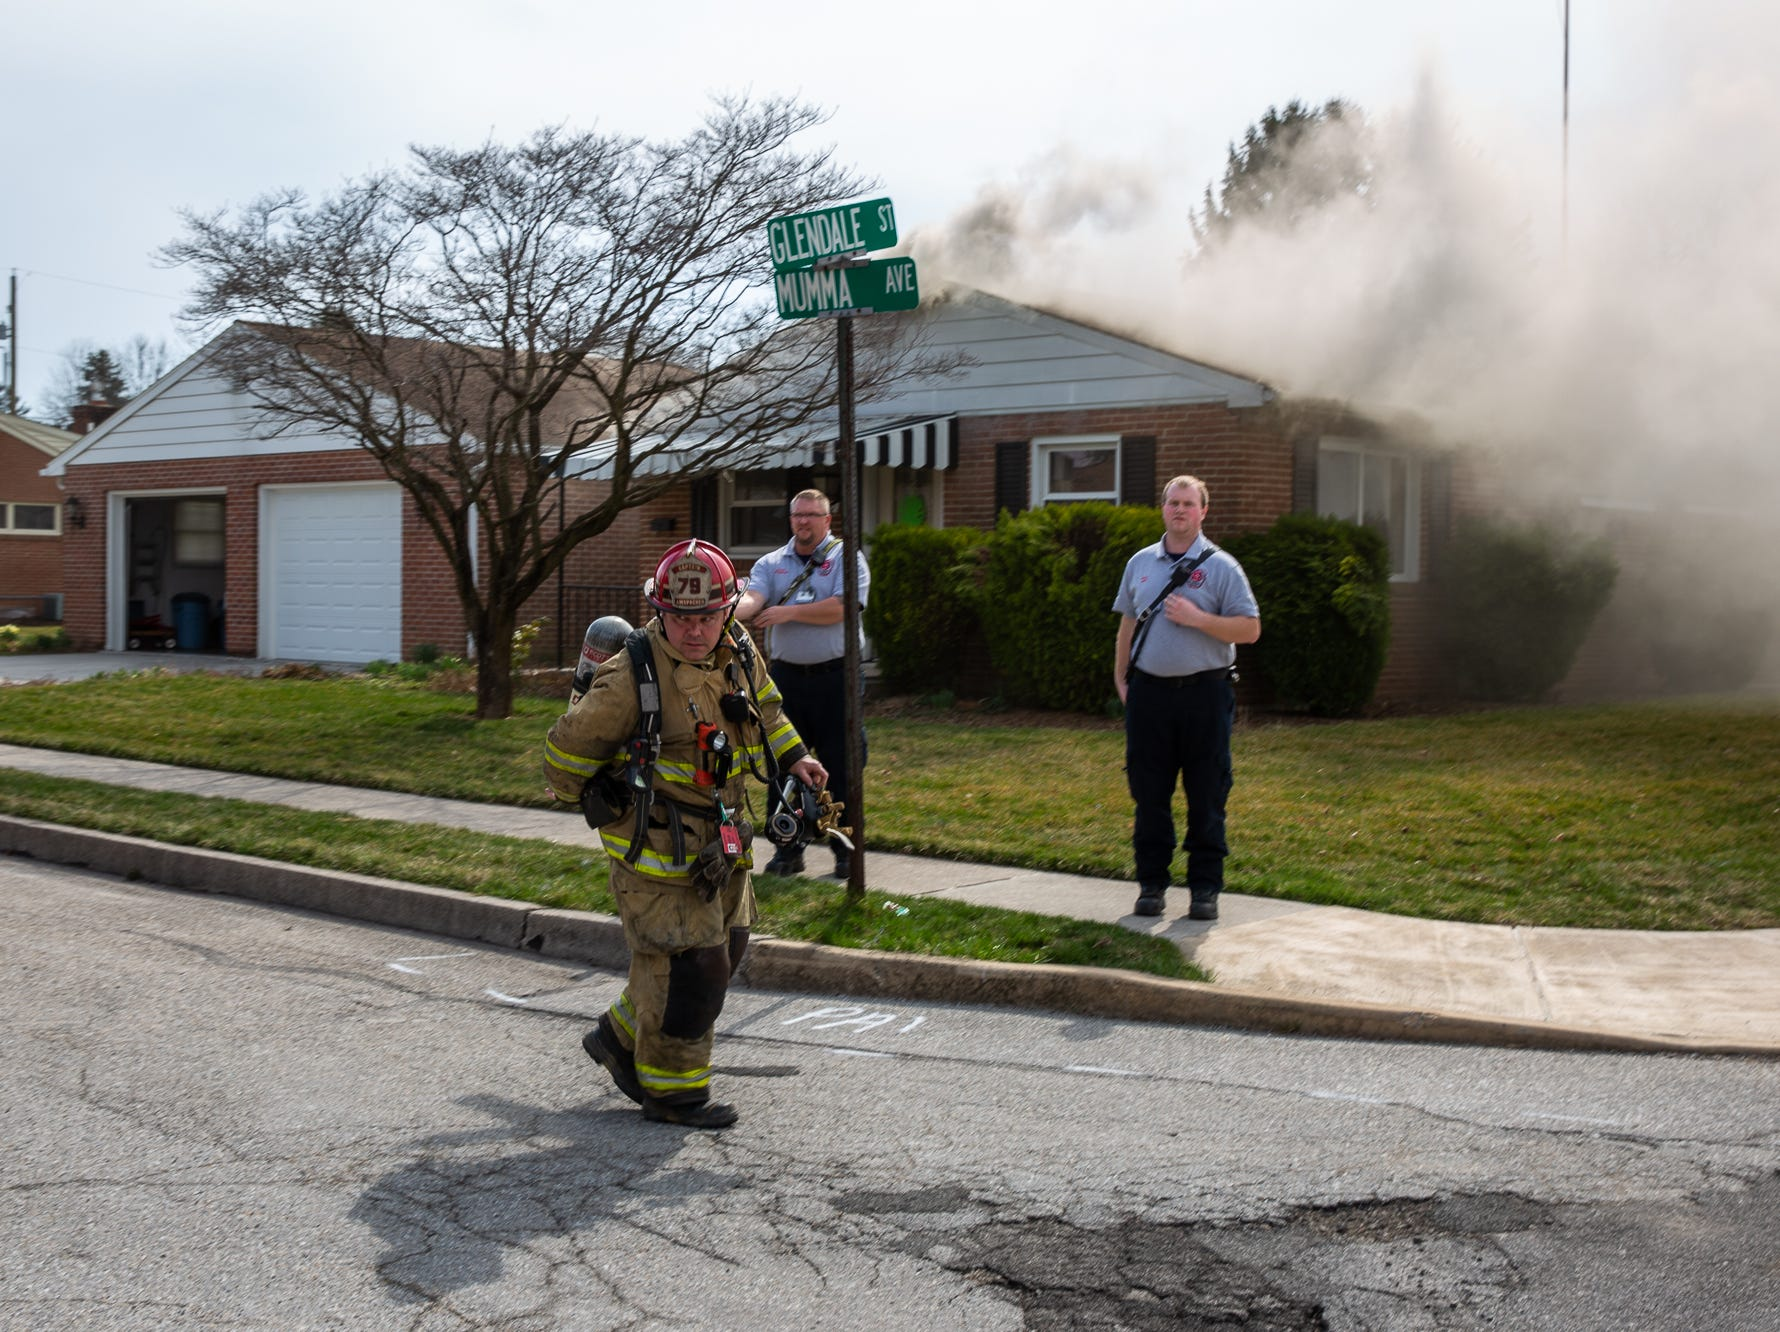 Captain Chuck Amspacher arrives at the scene of a house fire on the 100 block of Mumma Ave., Saturday, March 30, 2019, in Penn Township. No one was injured in the fire, which appears to have been an accidental fire in the kitchen, said Hanover Area Fire & Rescue Chief Tony Clousher.